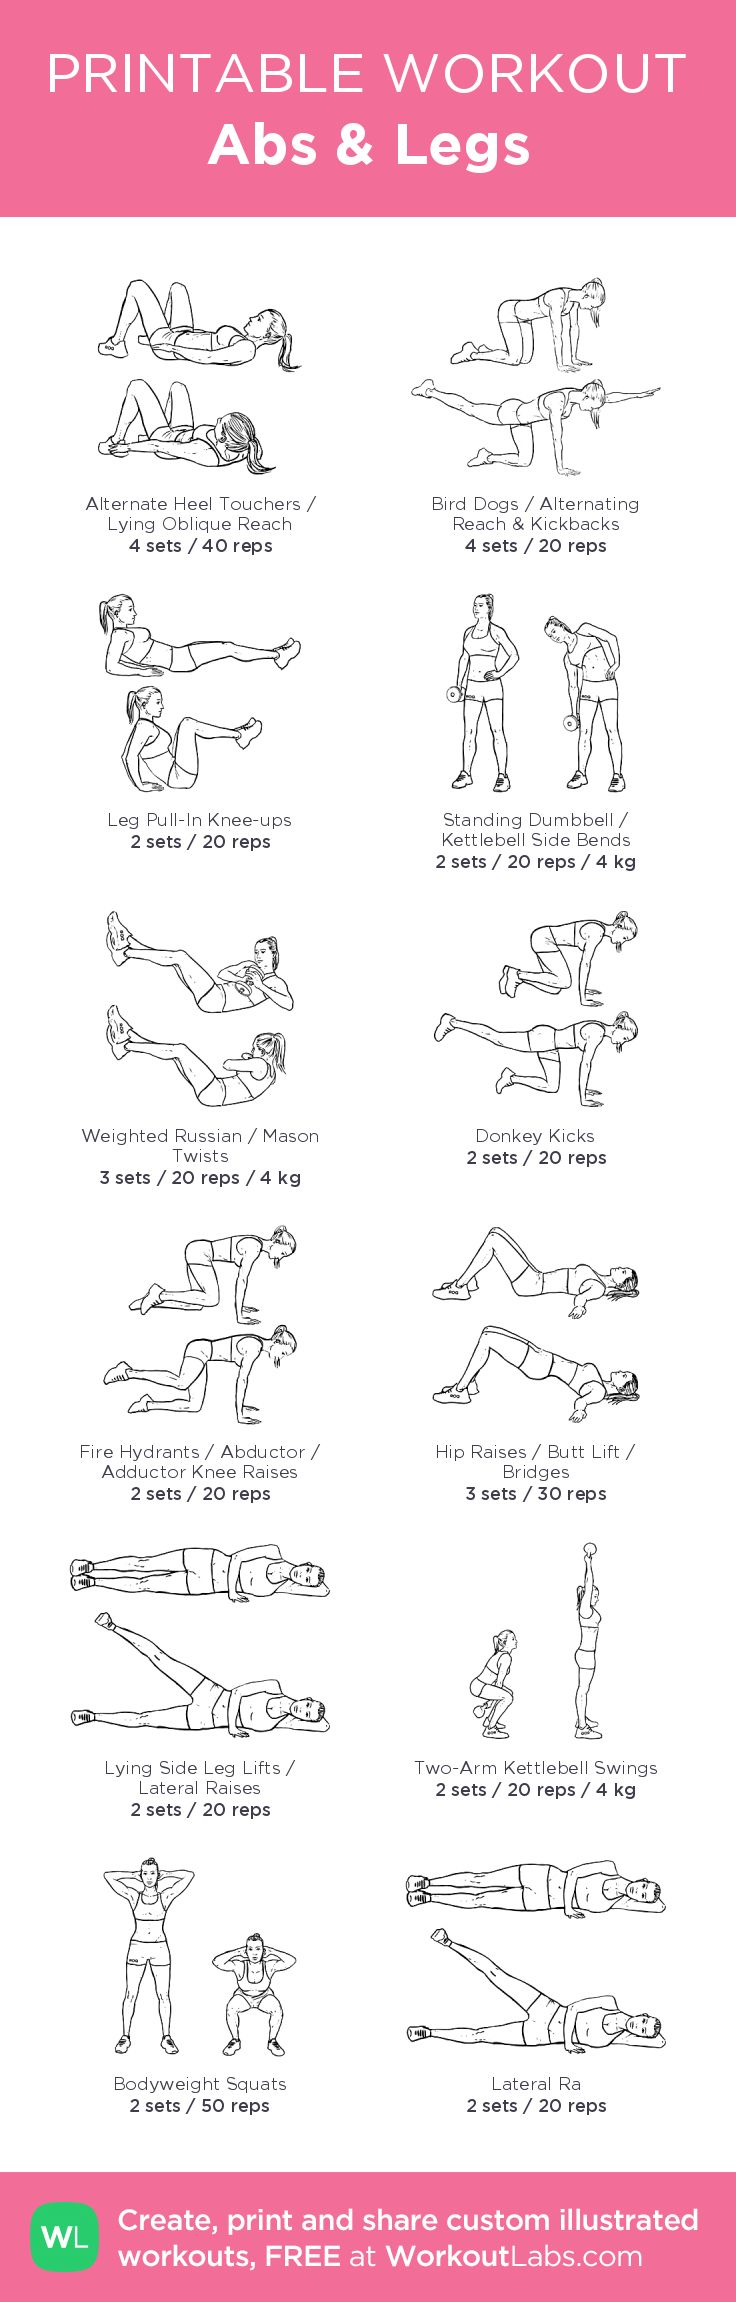 Abs & Legs –illustrated exercise plan created at WorkoutLabs.com • Click for a printable PDF and to build your own #customworkout